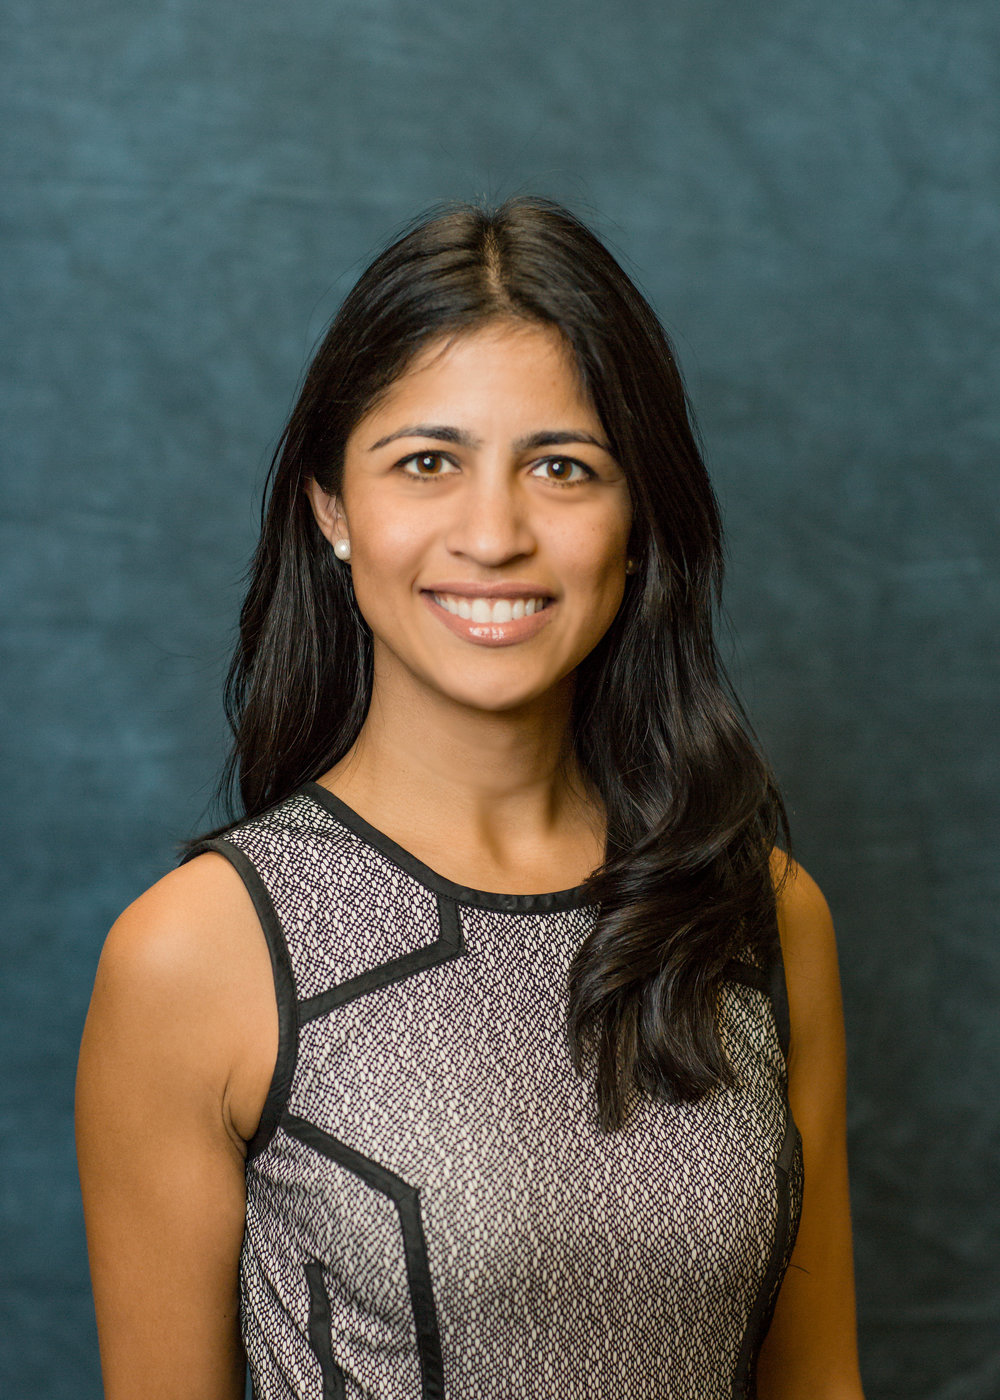 Nicole Quiterio, MD - EDUCATIONMedical Degree: Drexel University College of MedicineResidency: Harvard South ShoreFellowship:Stanford Hospital and ClinicsBOARD CERTIFIEDChild & Adolescent Psychiatry (Board Eligible)PsychiatryPROFESSIONAL MEMBERSHIPSAACAPSan Francisco Center for PsychoanalysisCLINICOakland